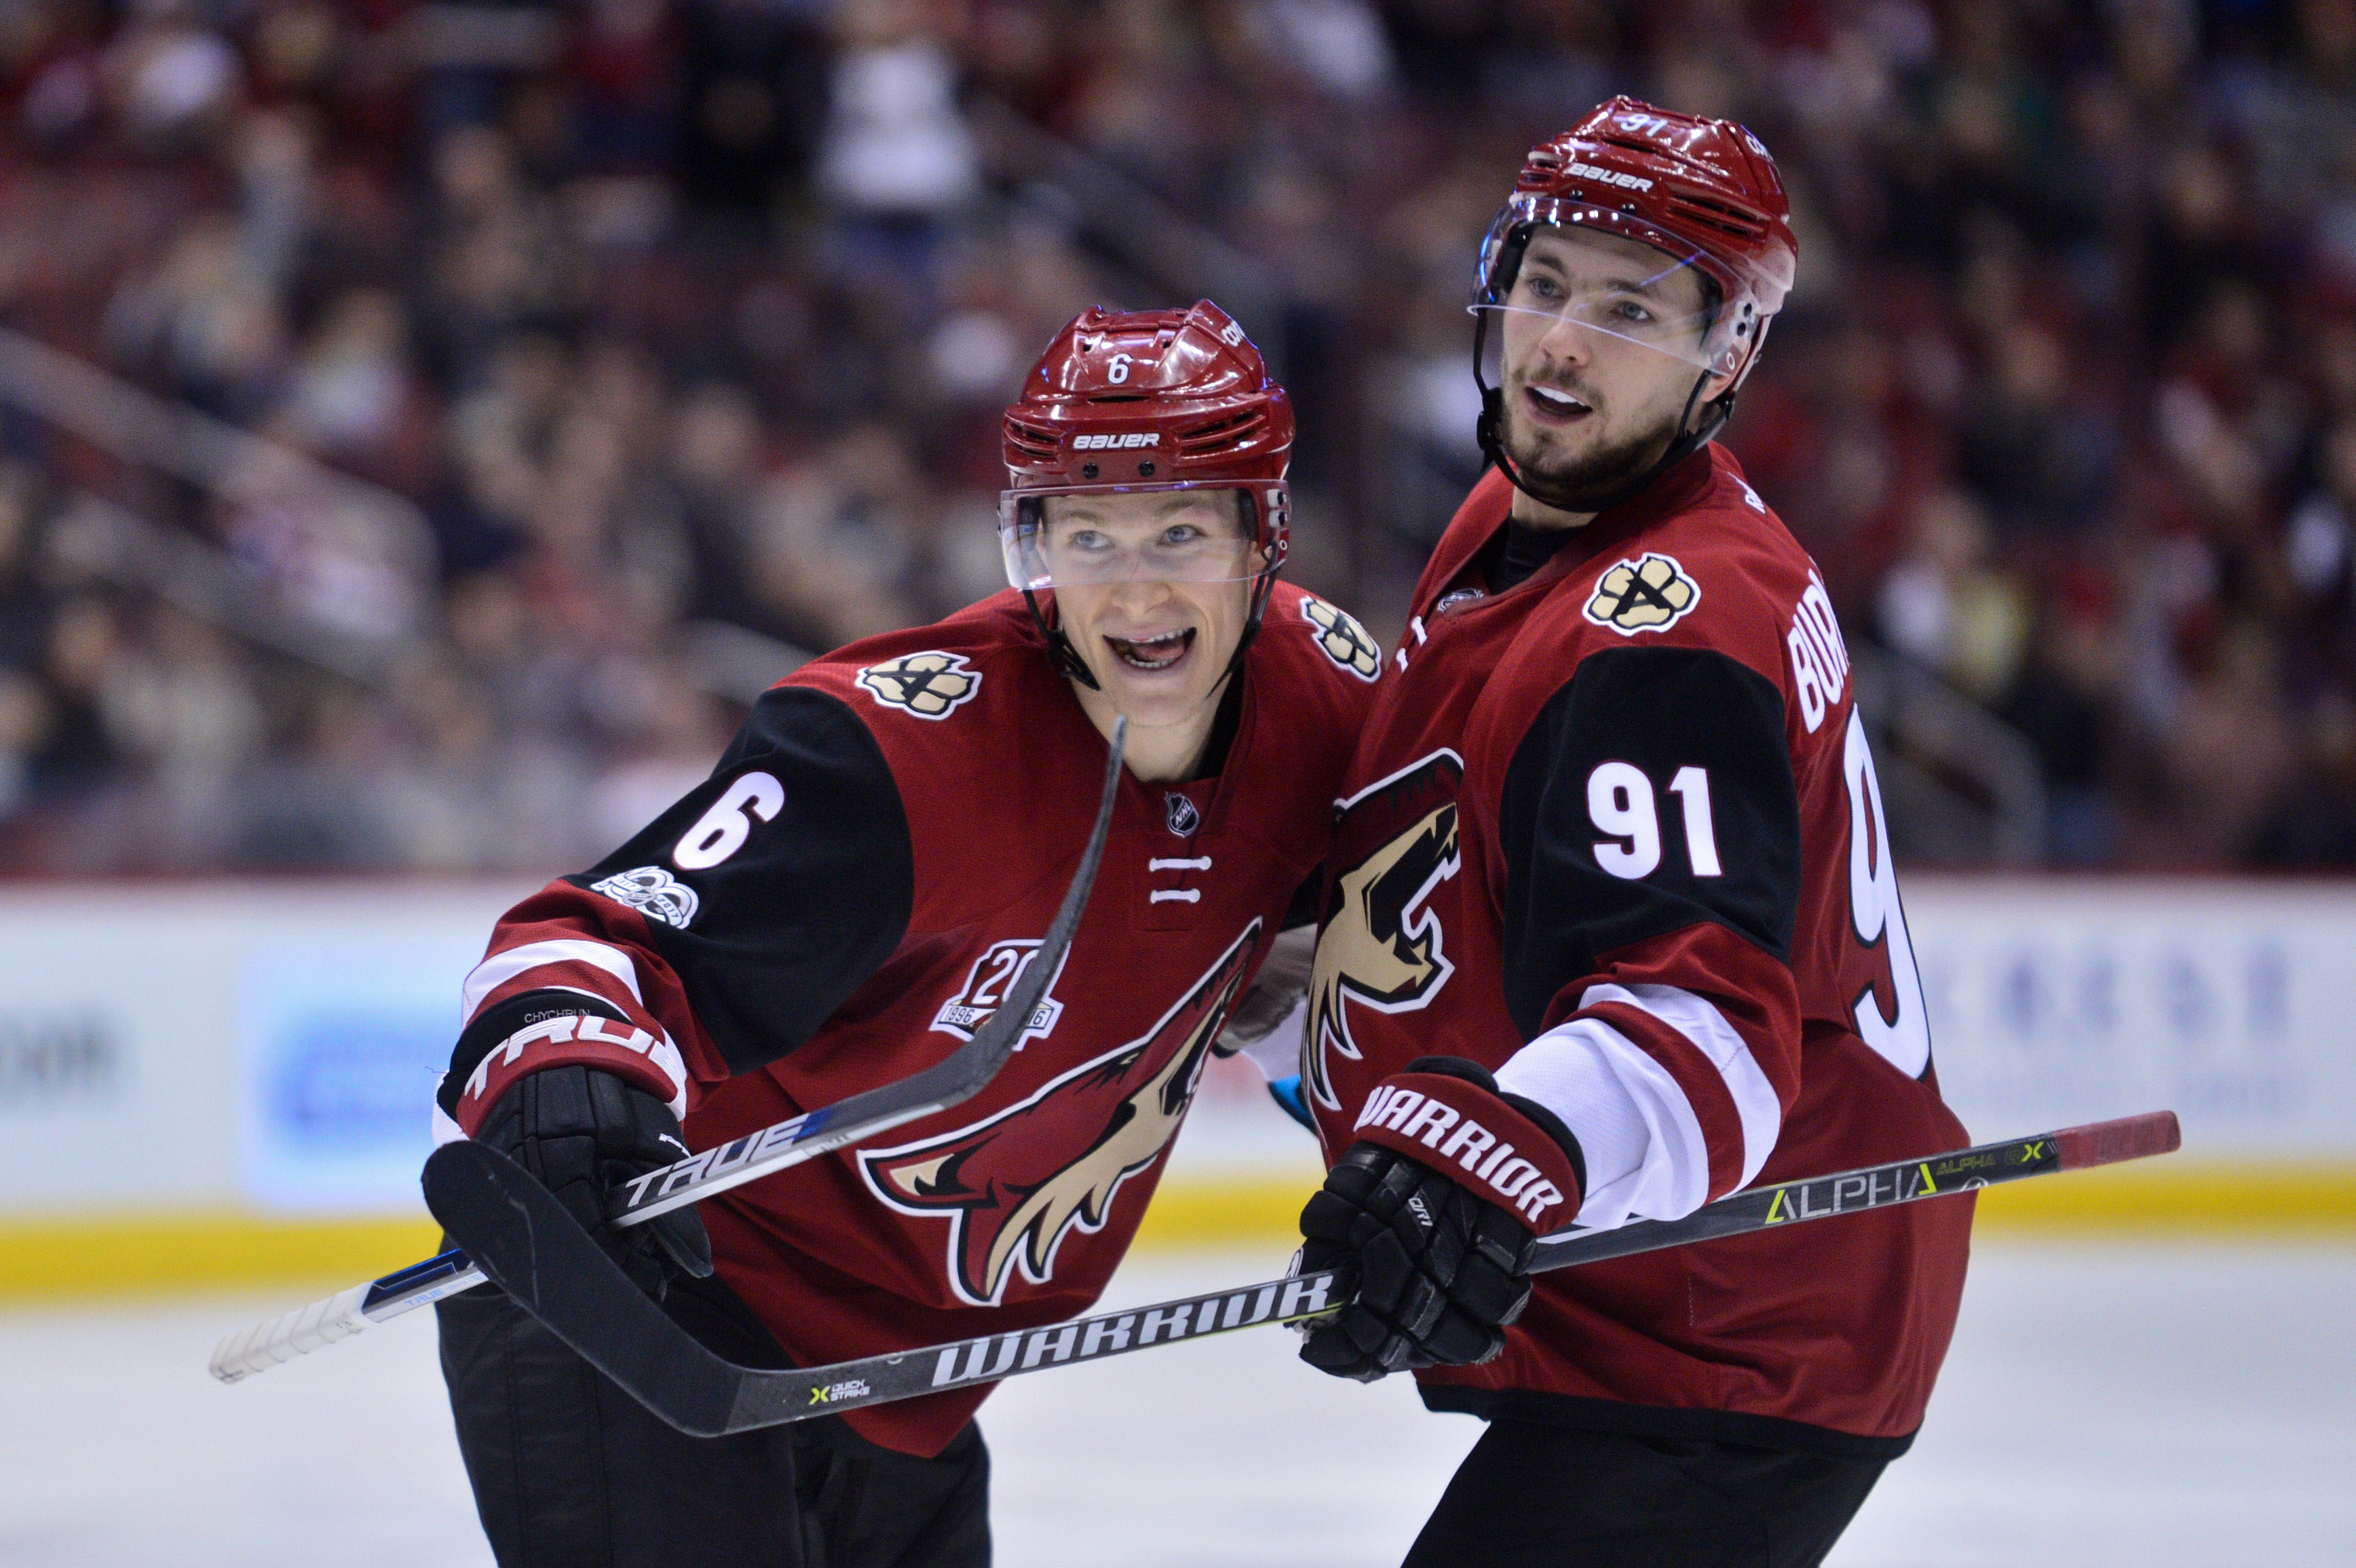 Arizona Coyotes: Jakob Chychrun Finding Offensive Touch